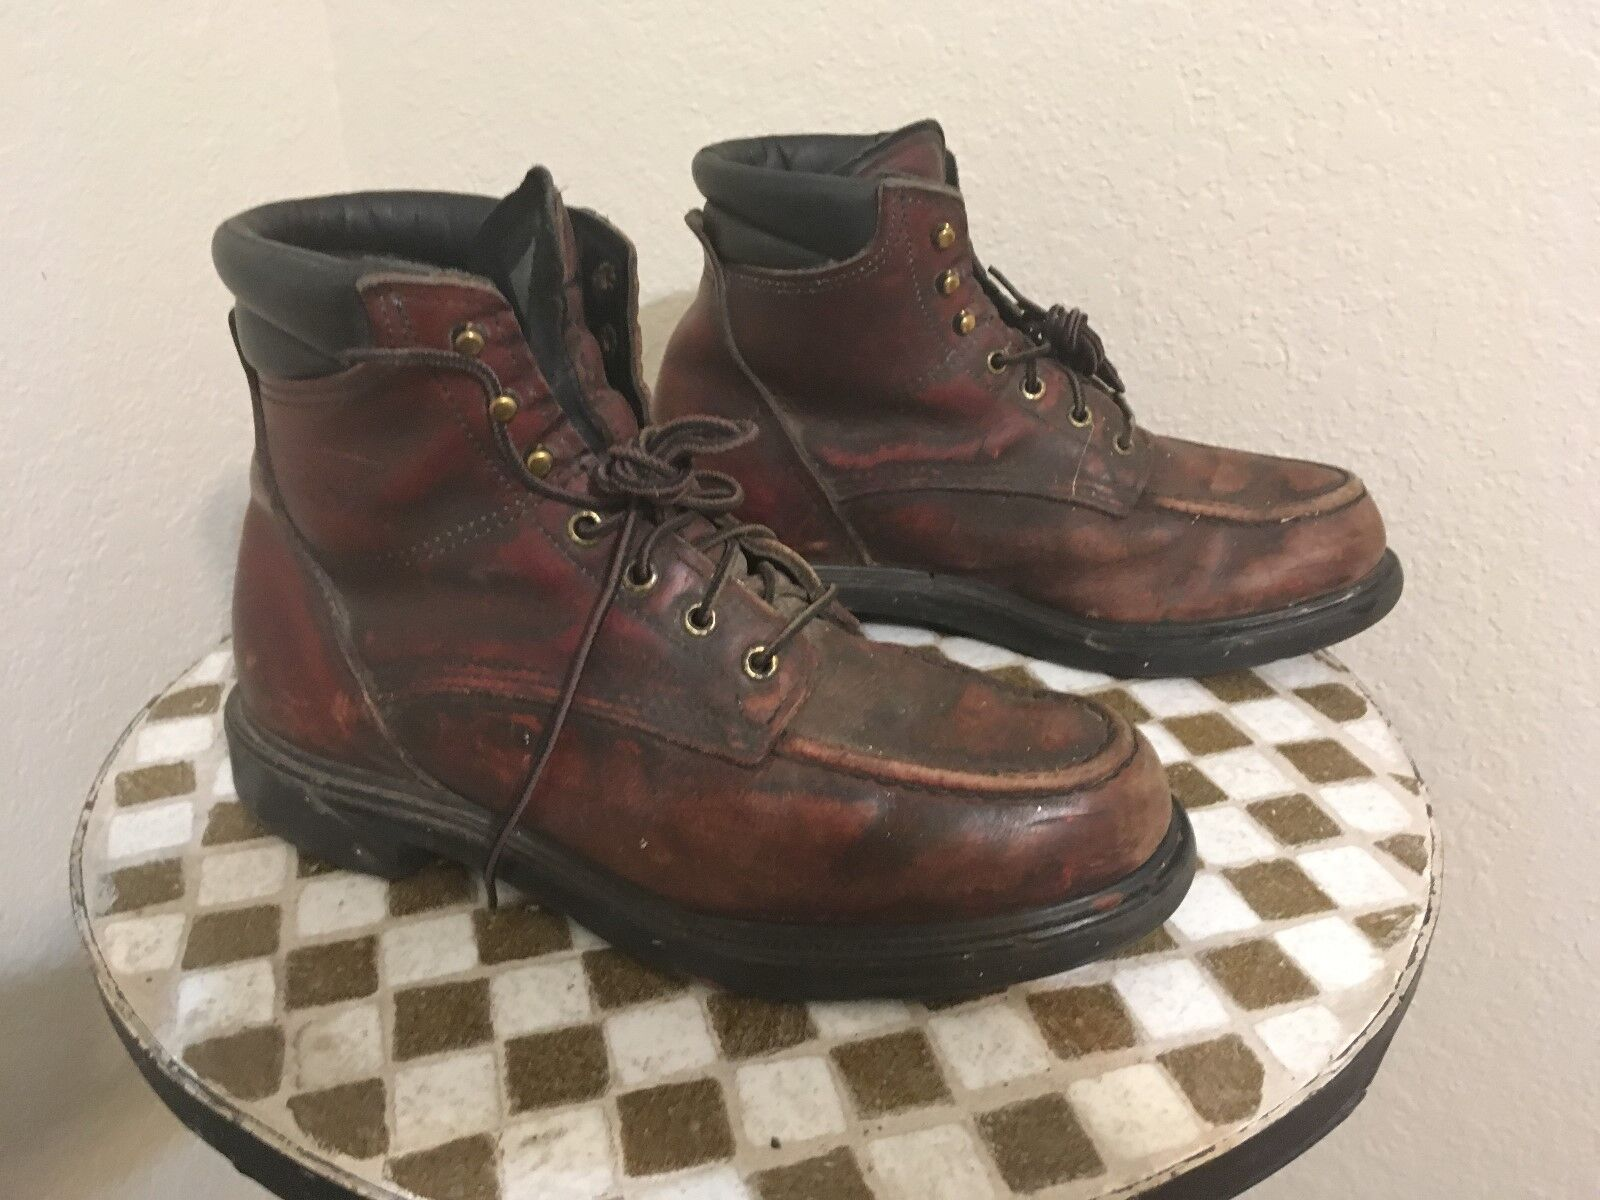 PAINTER BOOTS  A OXBLOOD REDWING 202 DISTRESSED RANCH WORK BOOTS 8.5 D